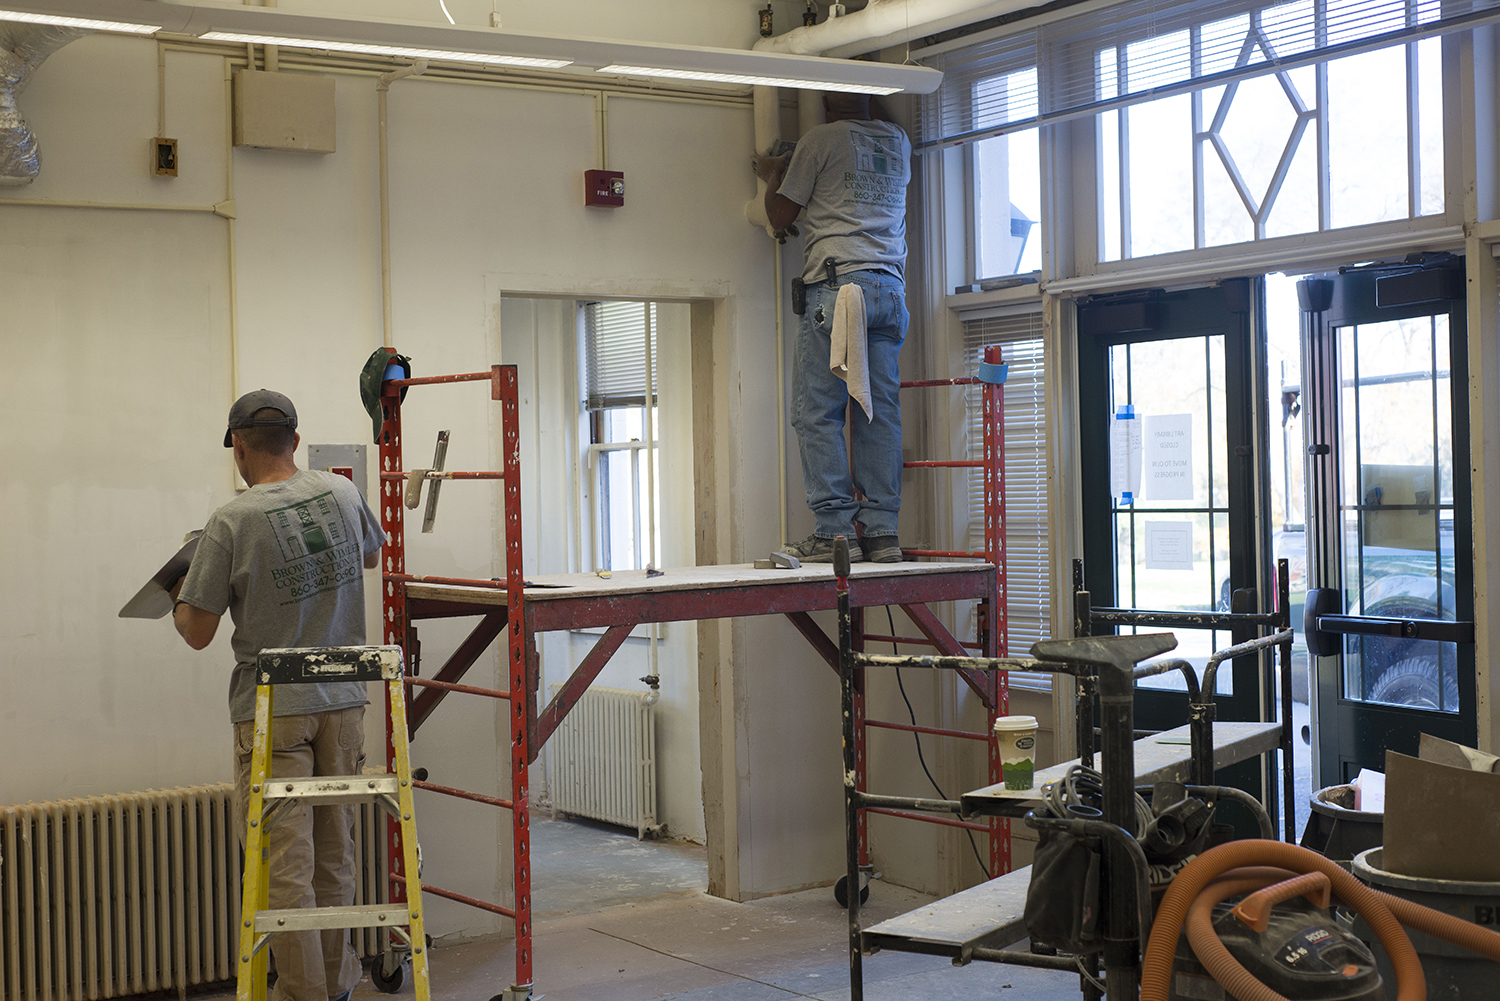 Contractors are working to restore and transform theDavison Art Center's carriage house section into a Digital Design Studio. The space formerly housed the Art Library